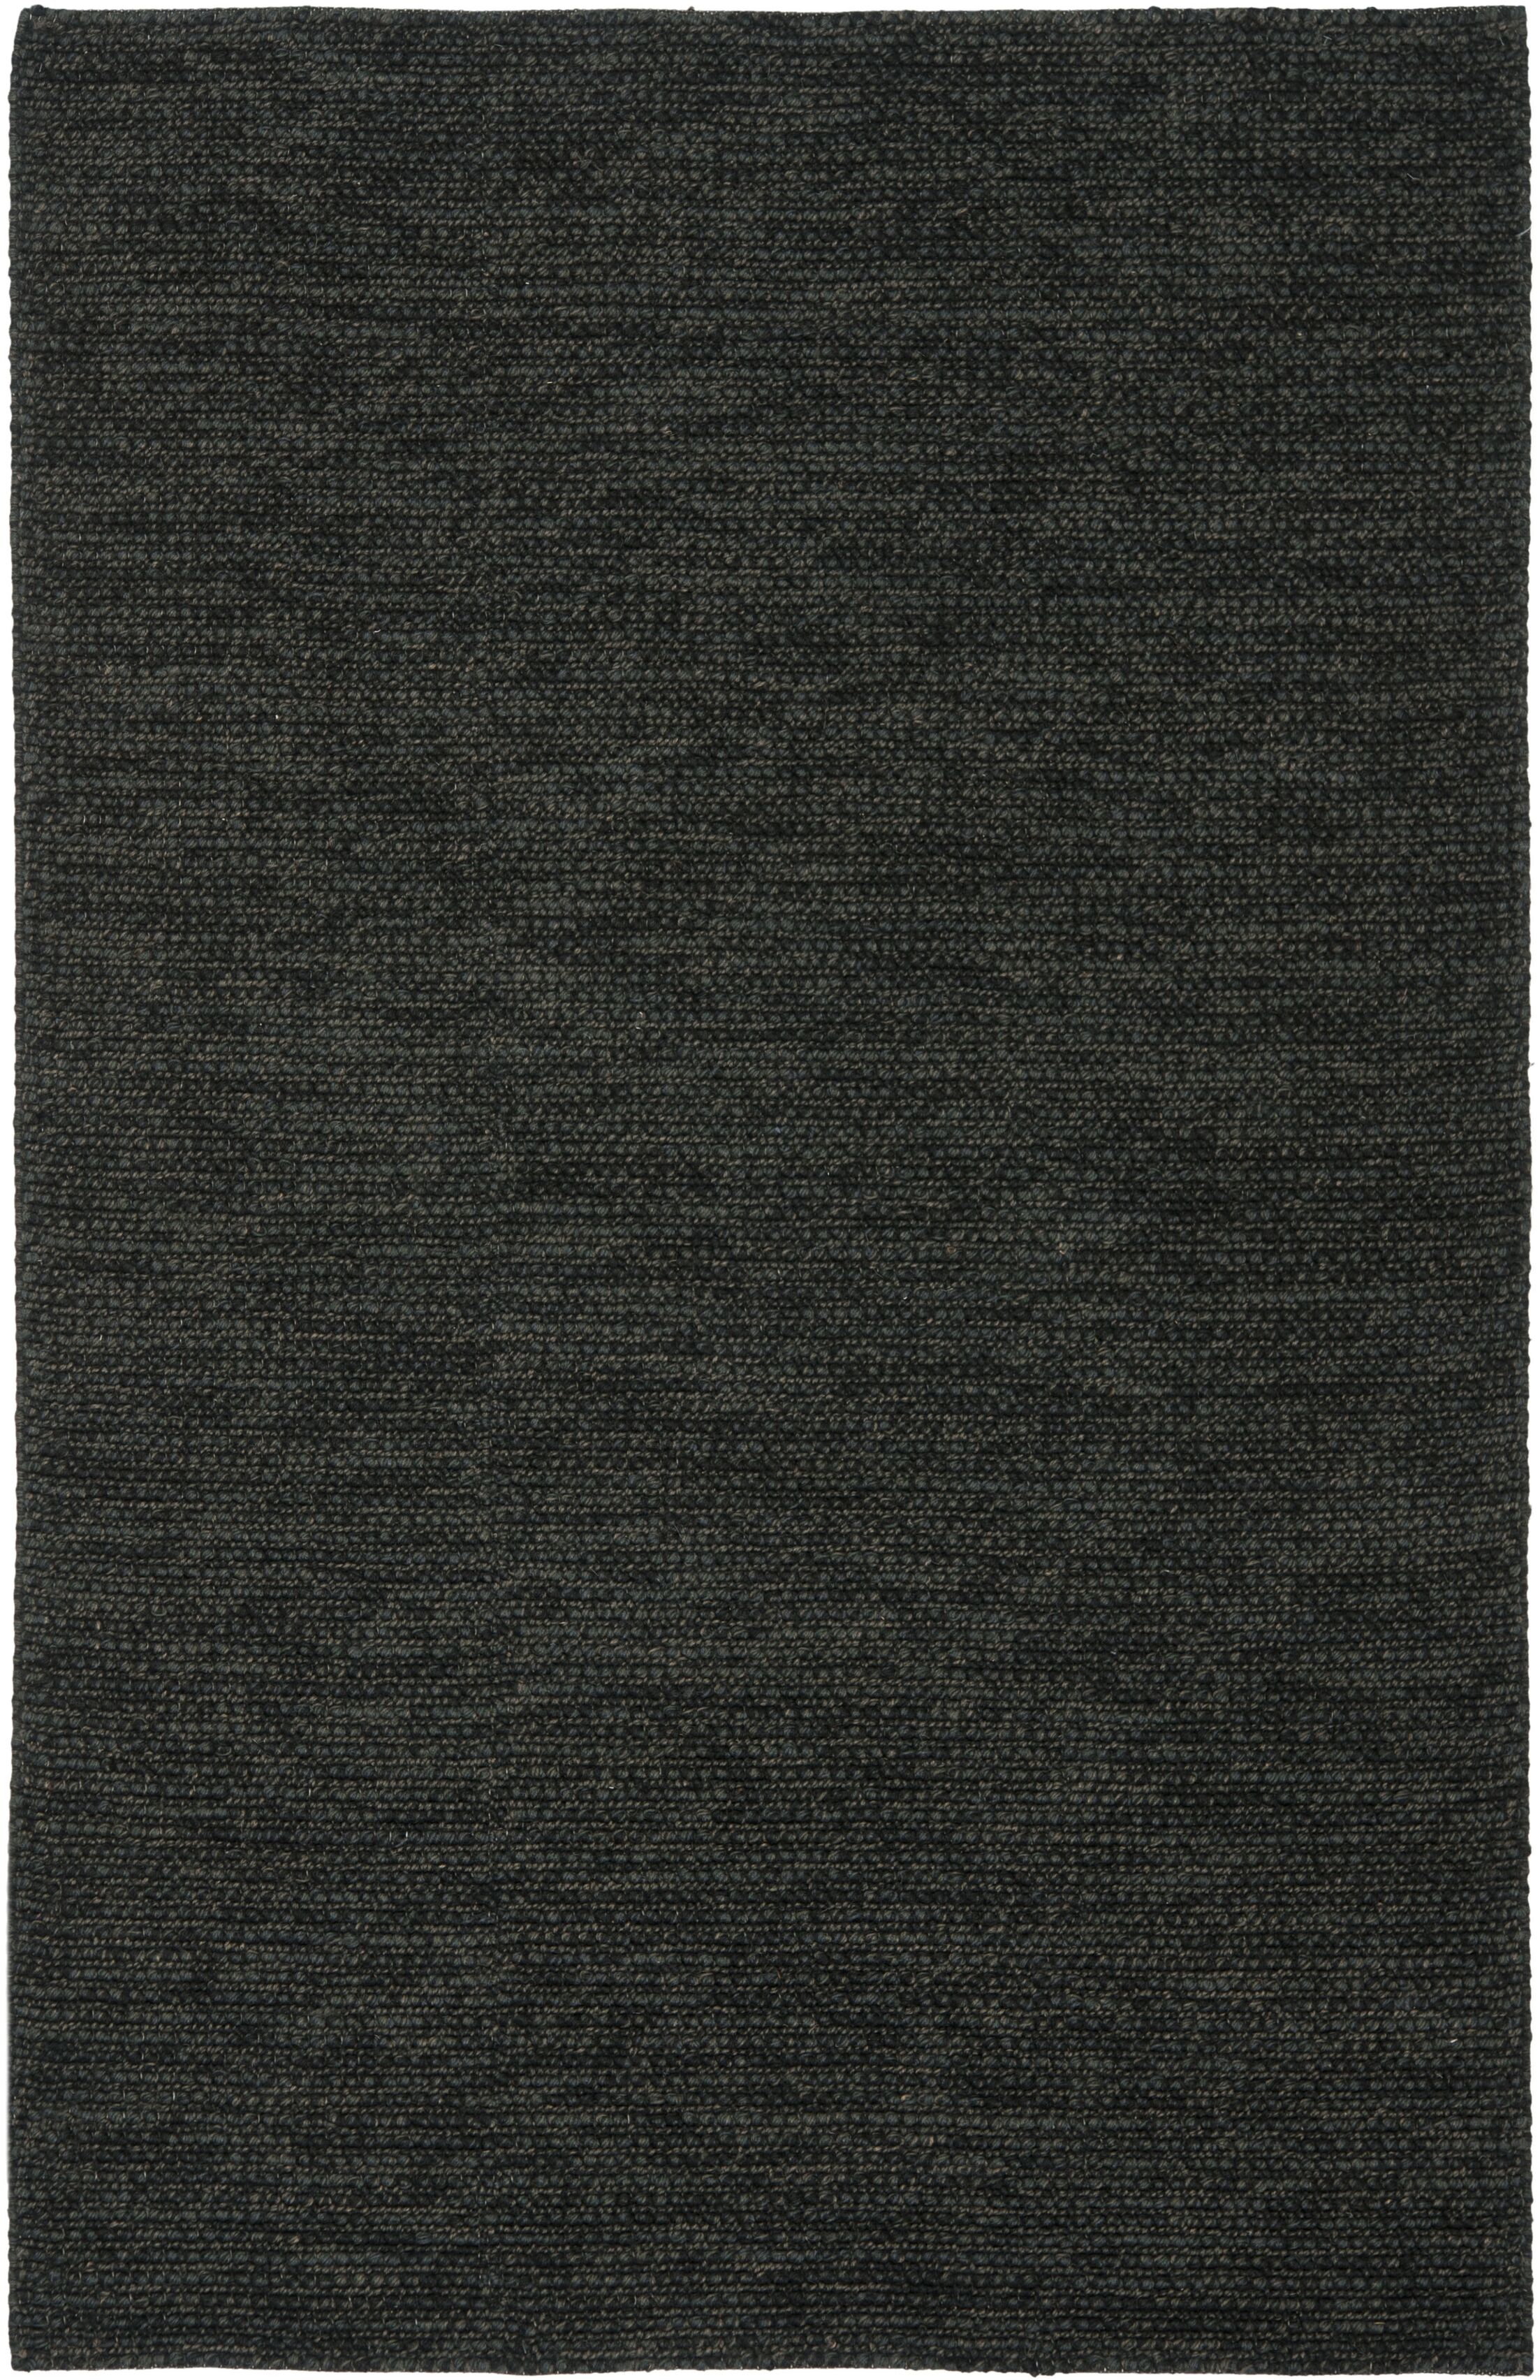 Nubby Tweed Ebony Area Rug Rug Size: Rectangle 5' x 8'